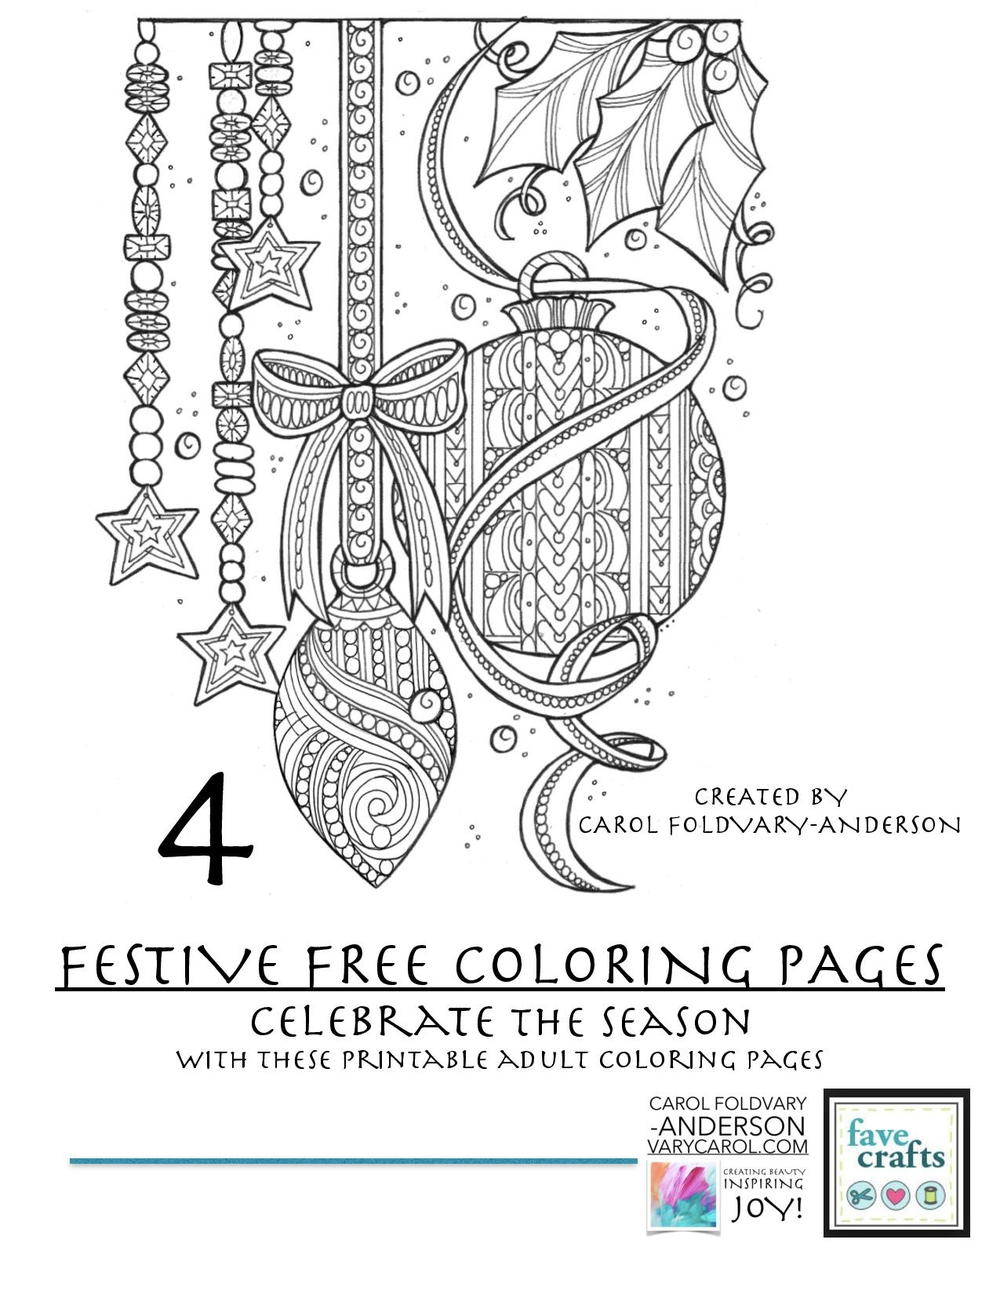 4 festive free holiday coloring pages for adults pdf favecraftscom